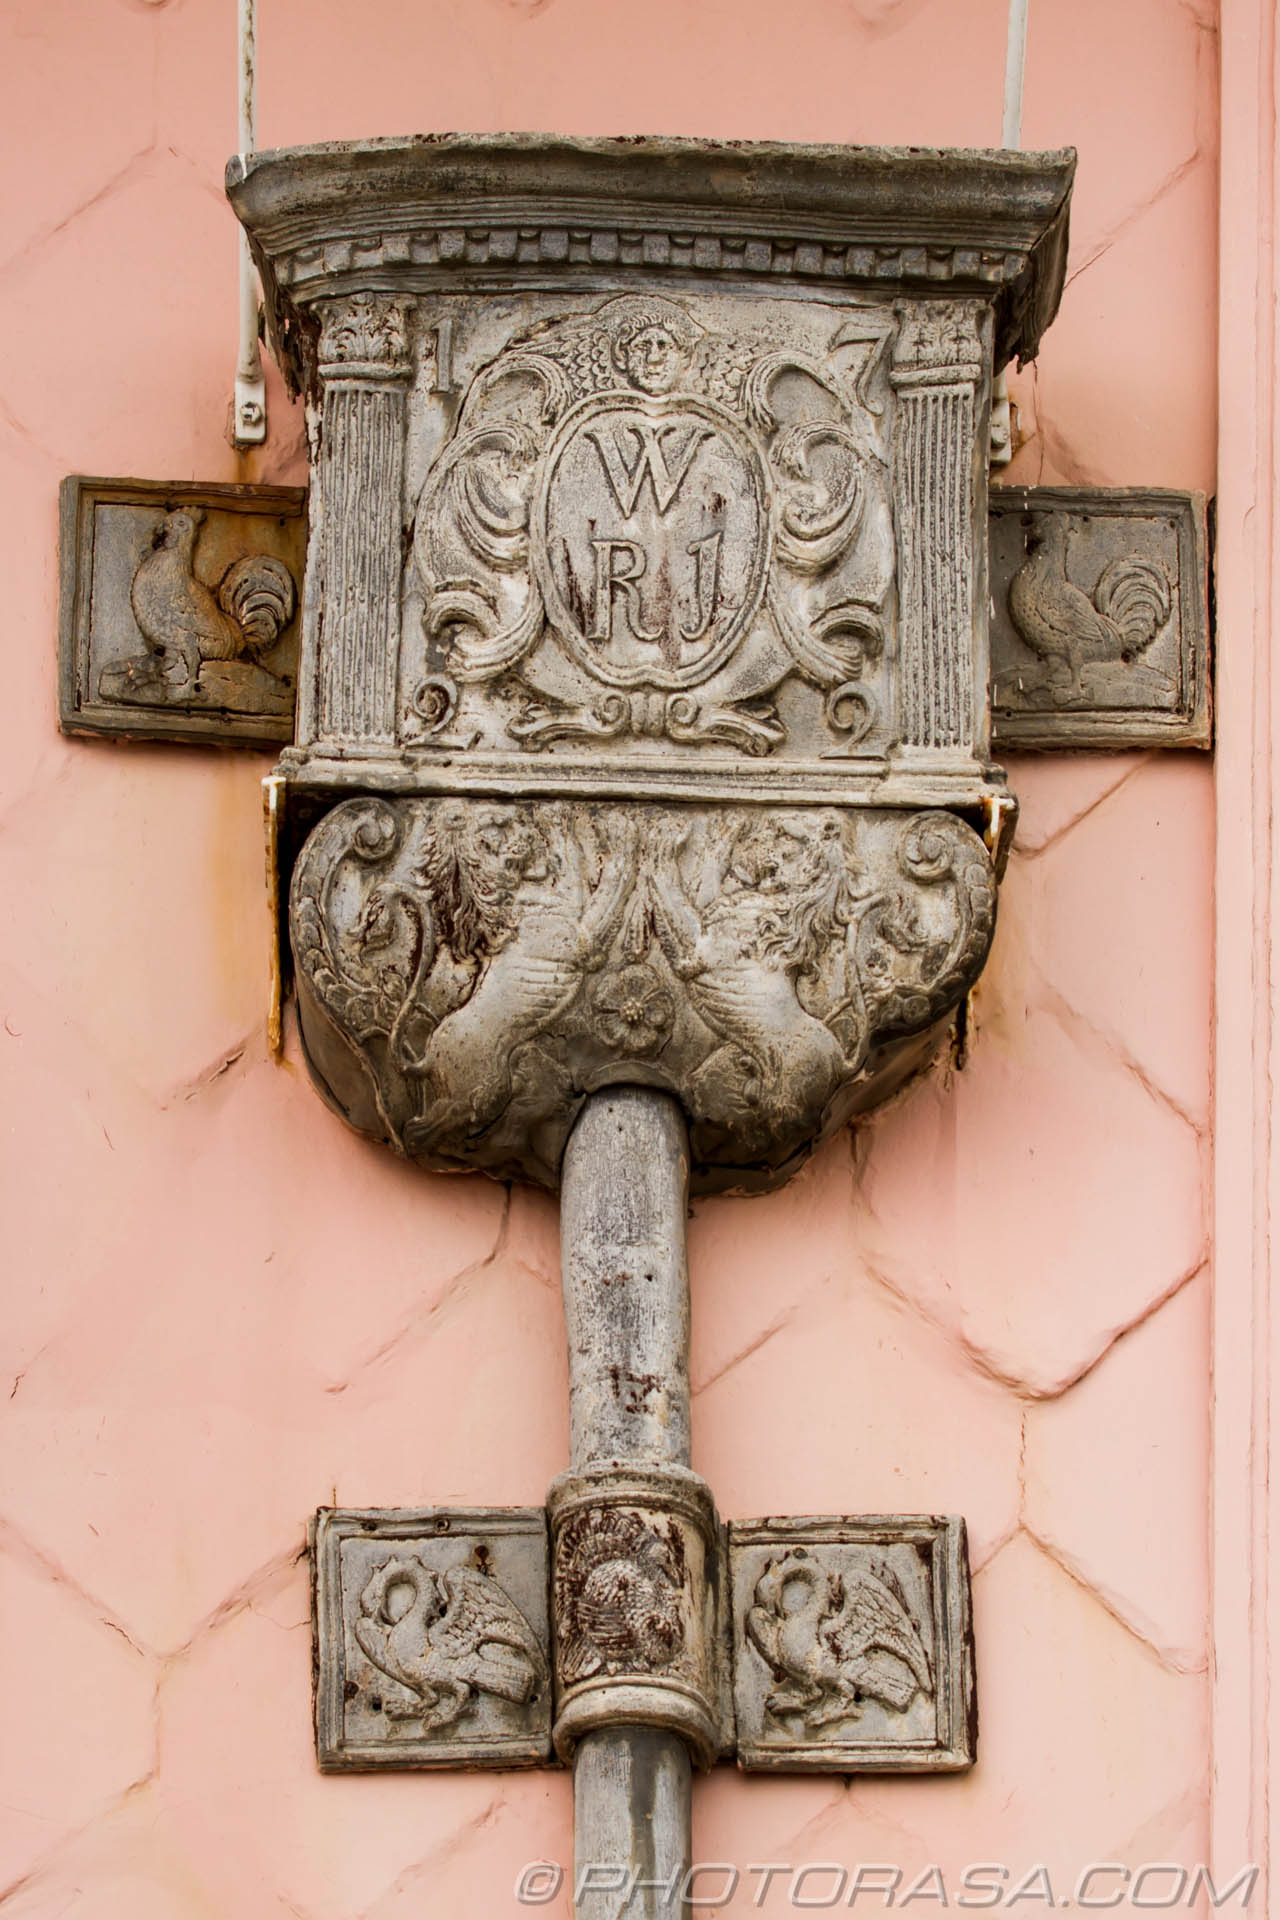 http://photorasa.com/lyme-regis/ornate-18th-century-drain/